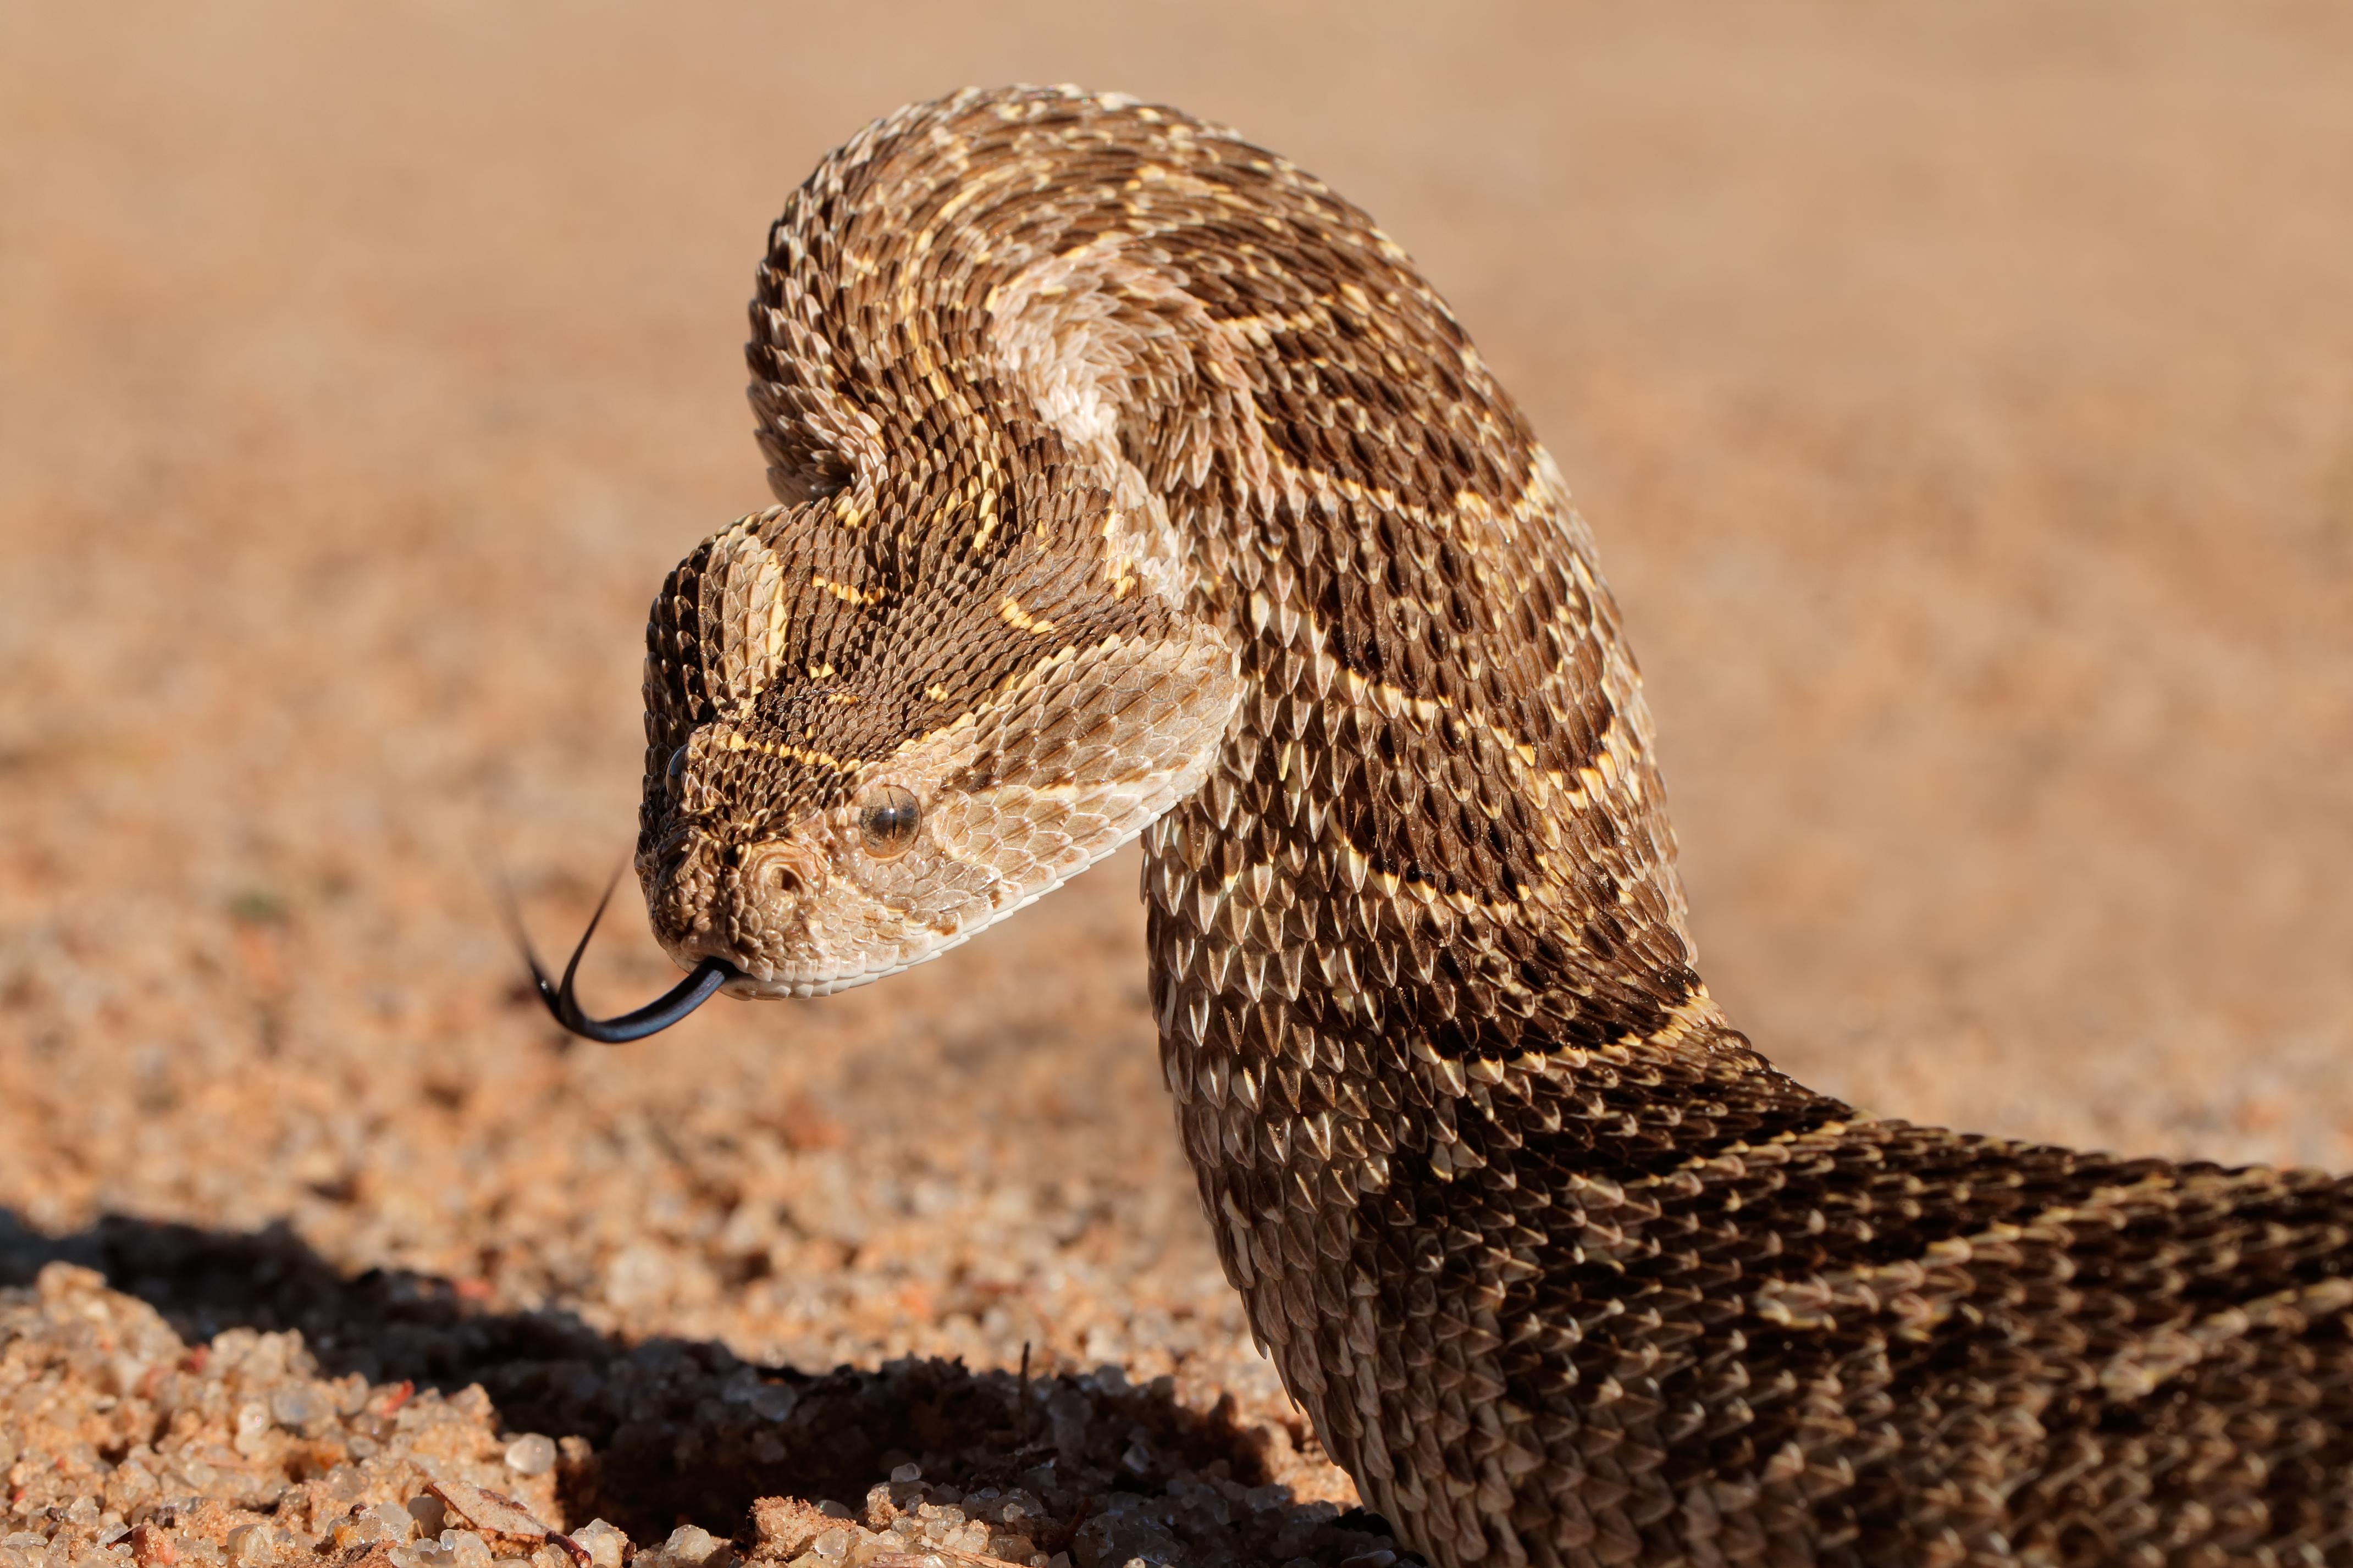 The puff adder is often described as robust or heavily built and grows to 40 inches. (Shutterstock/EcoPrint)